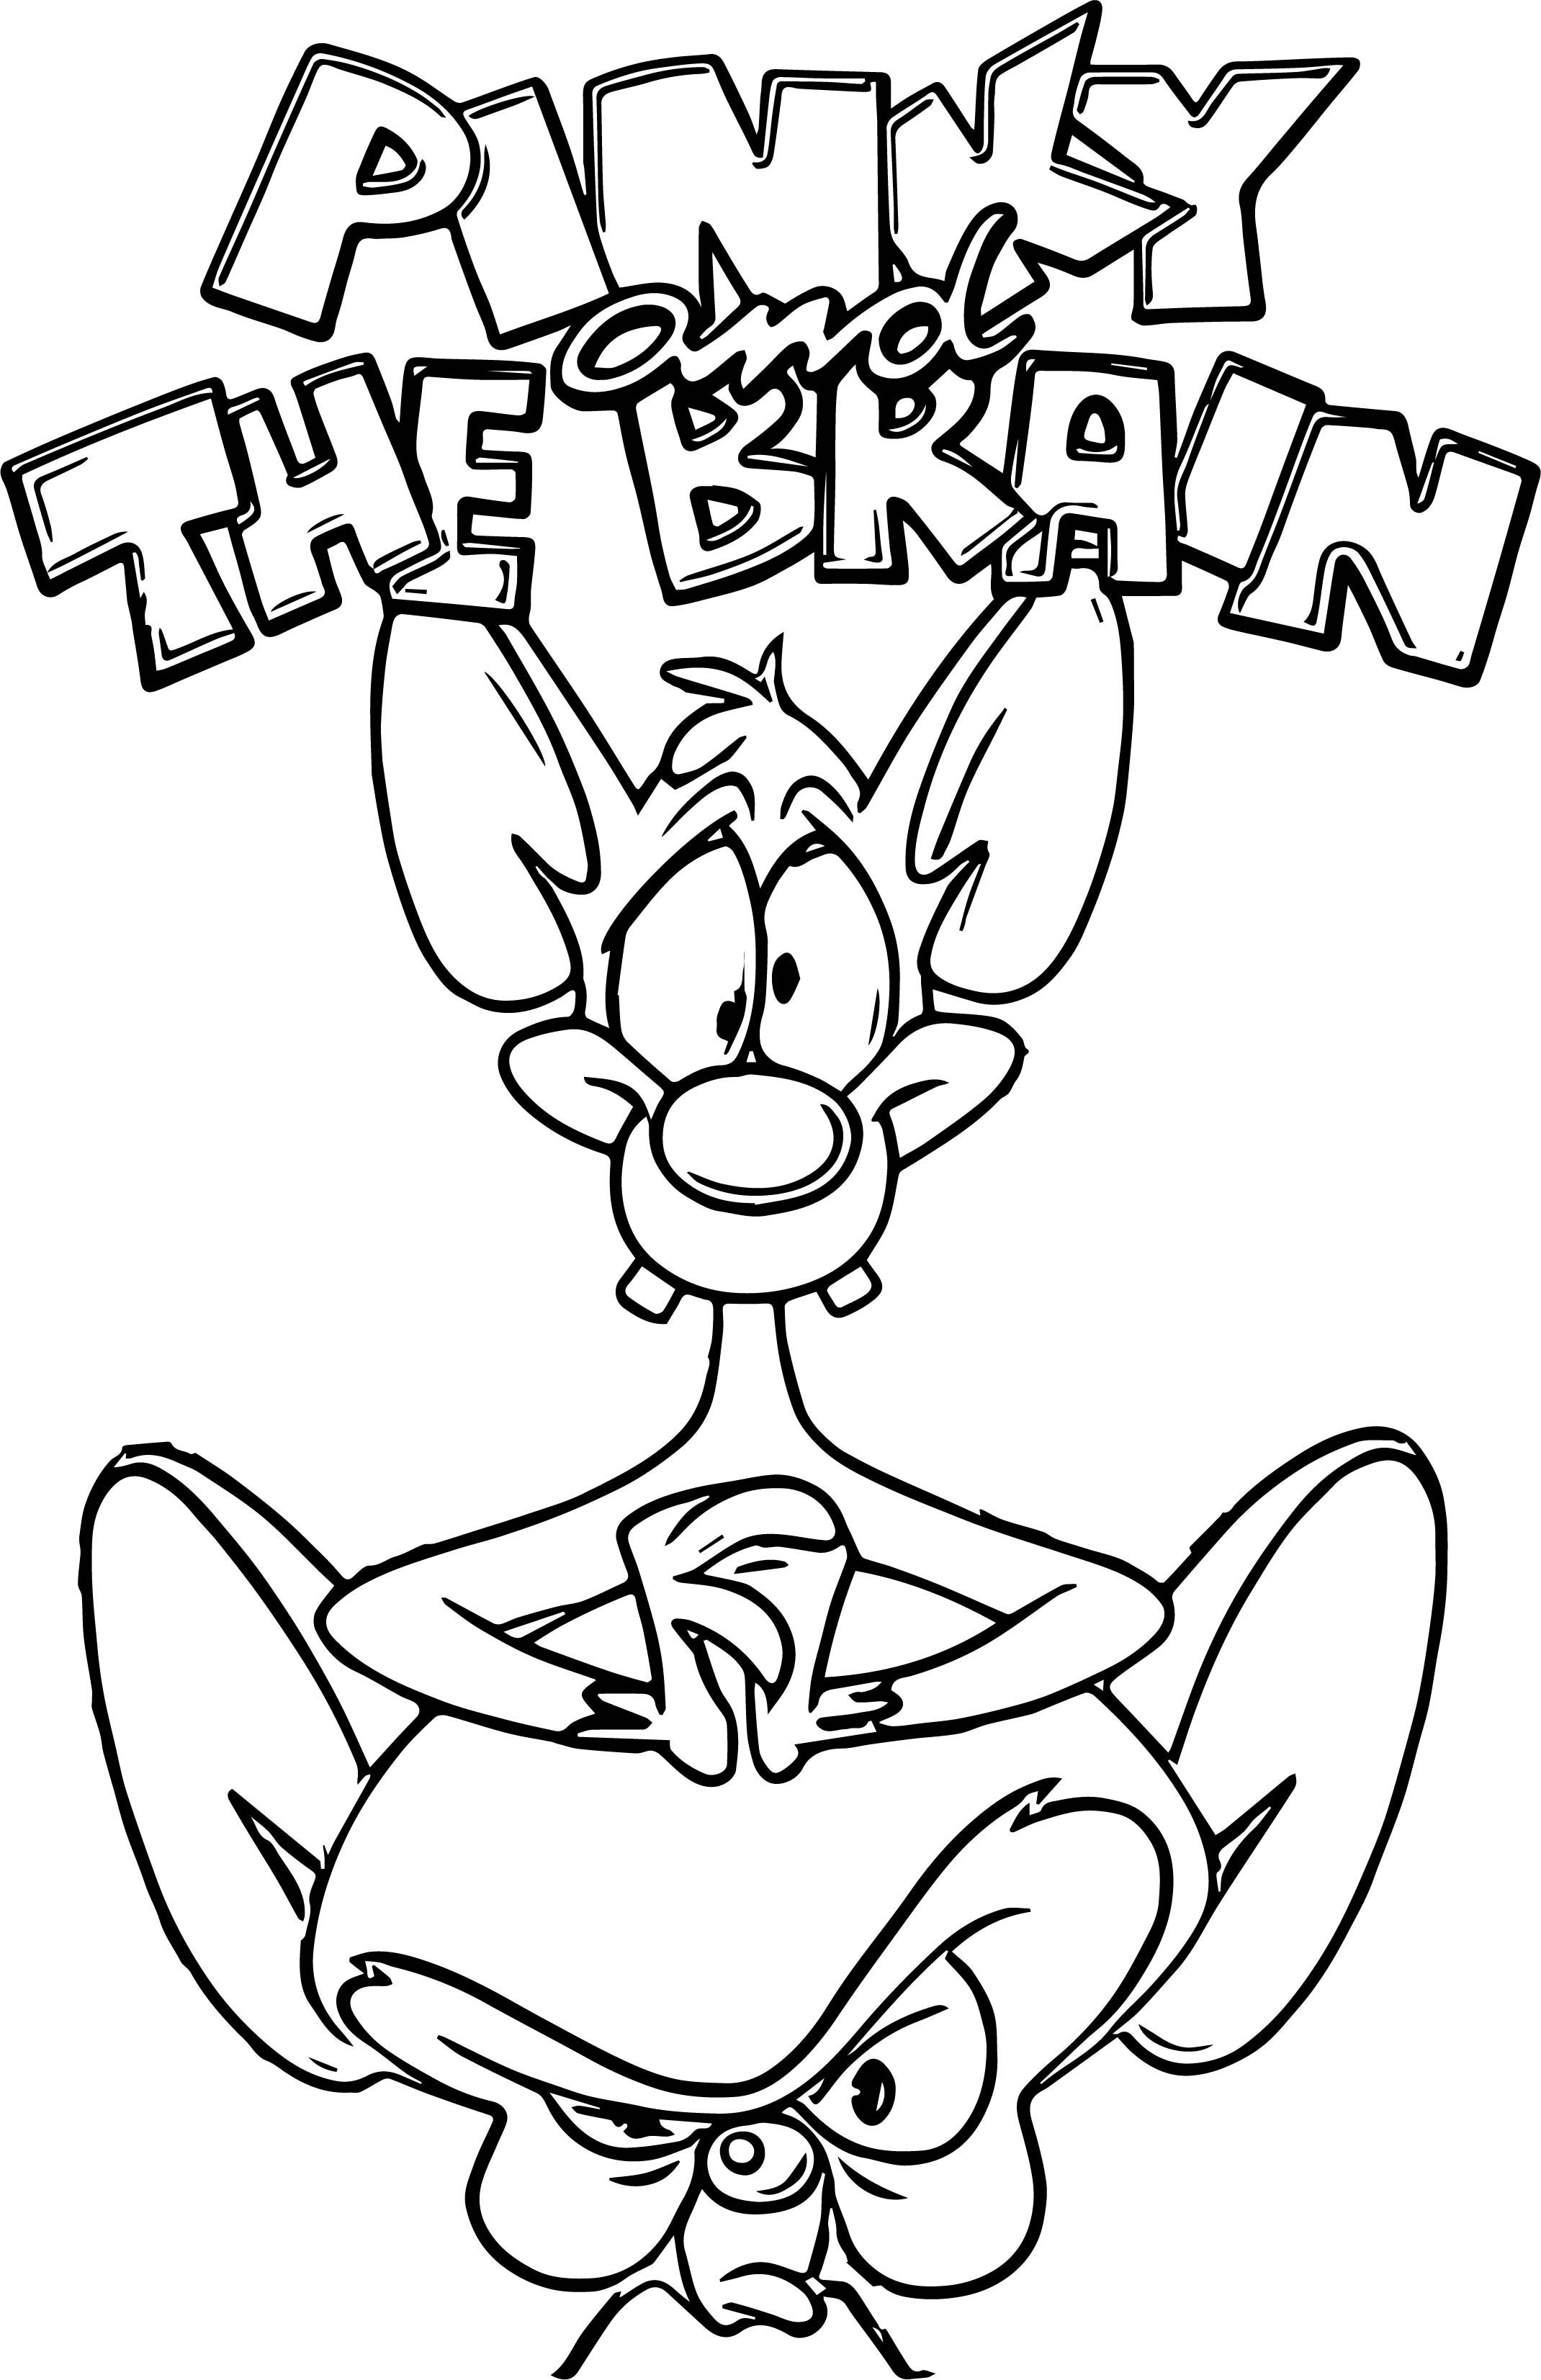 Pinky and the Brain Coloring Pages - Best Coloring Pages For Kids